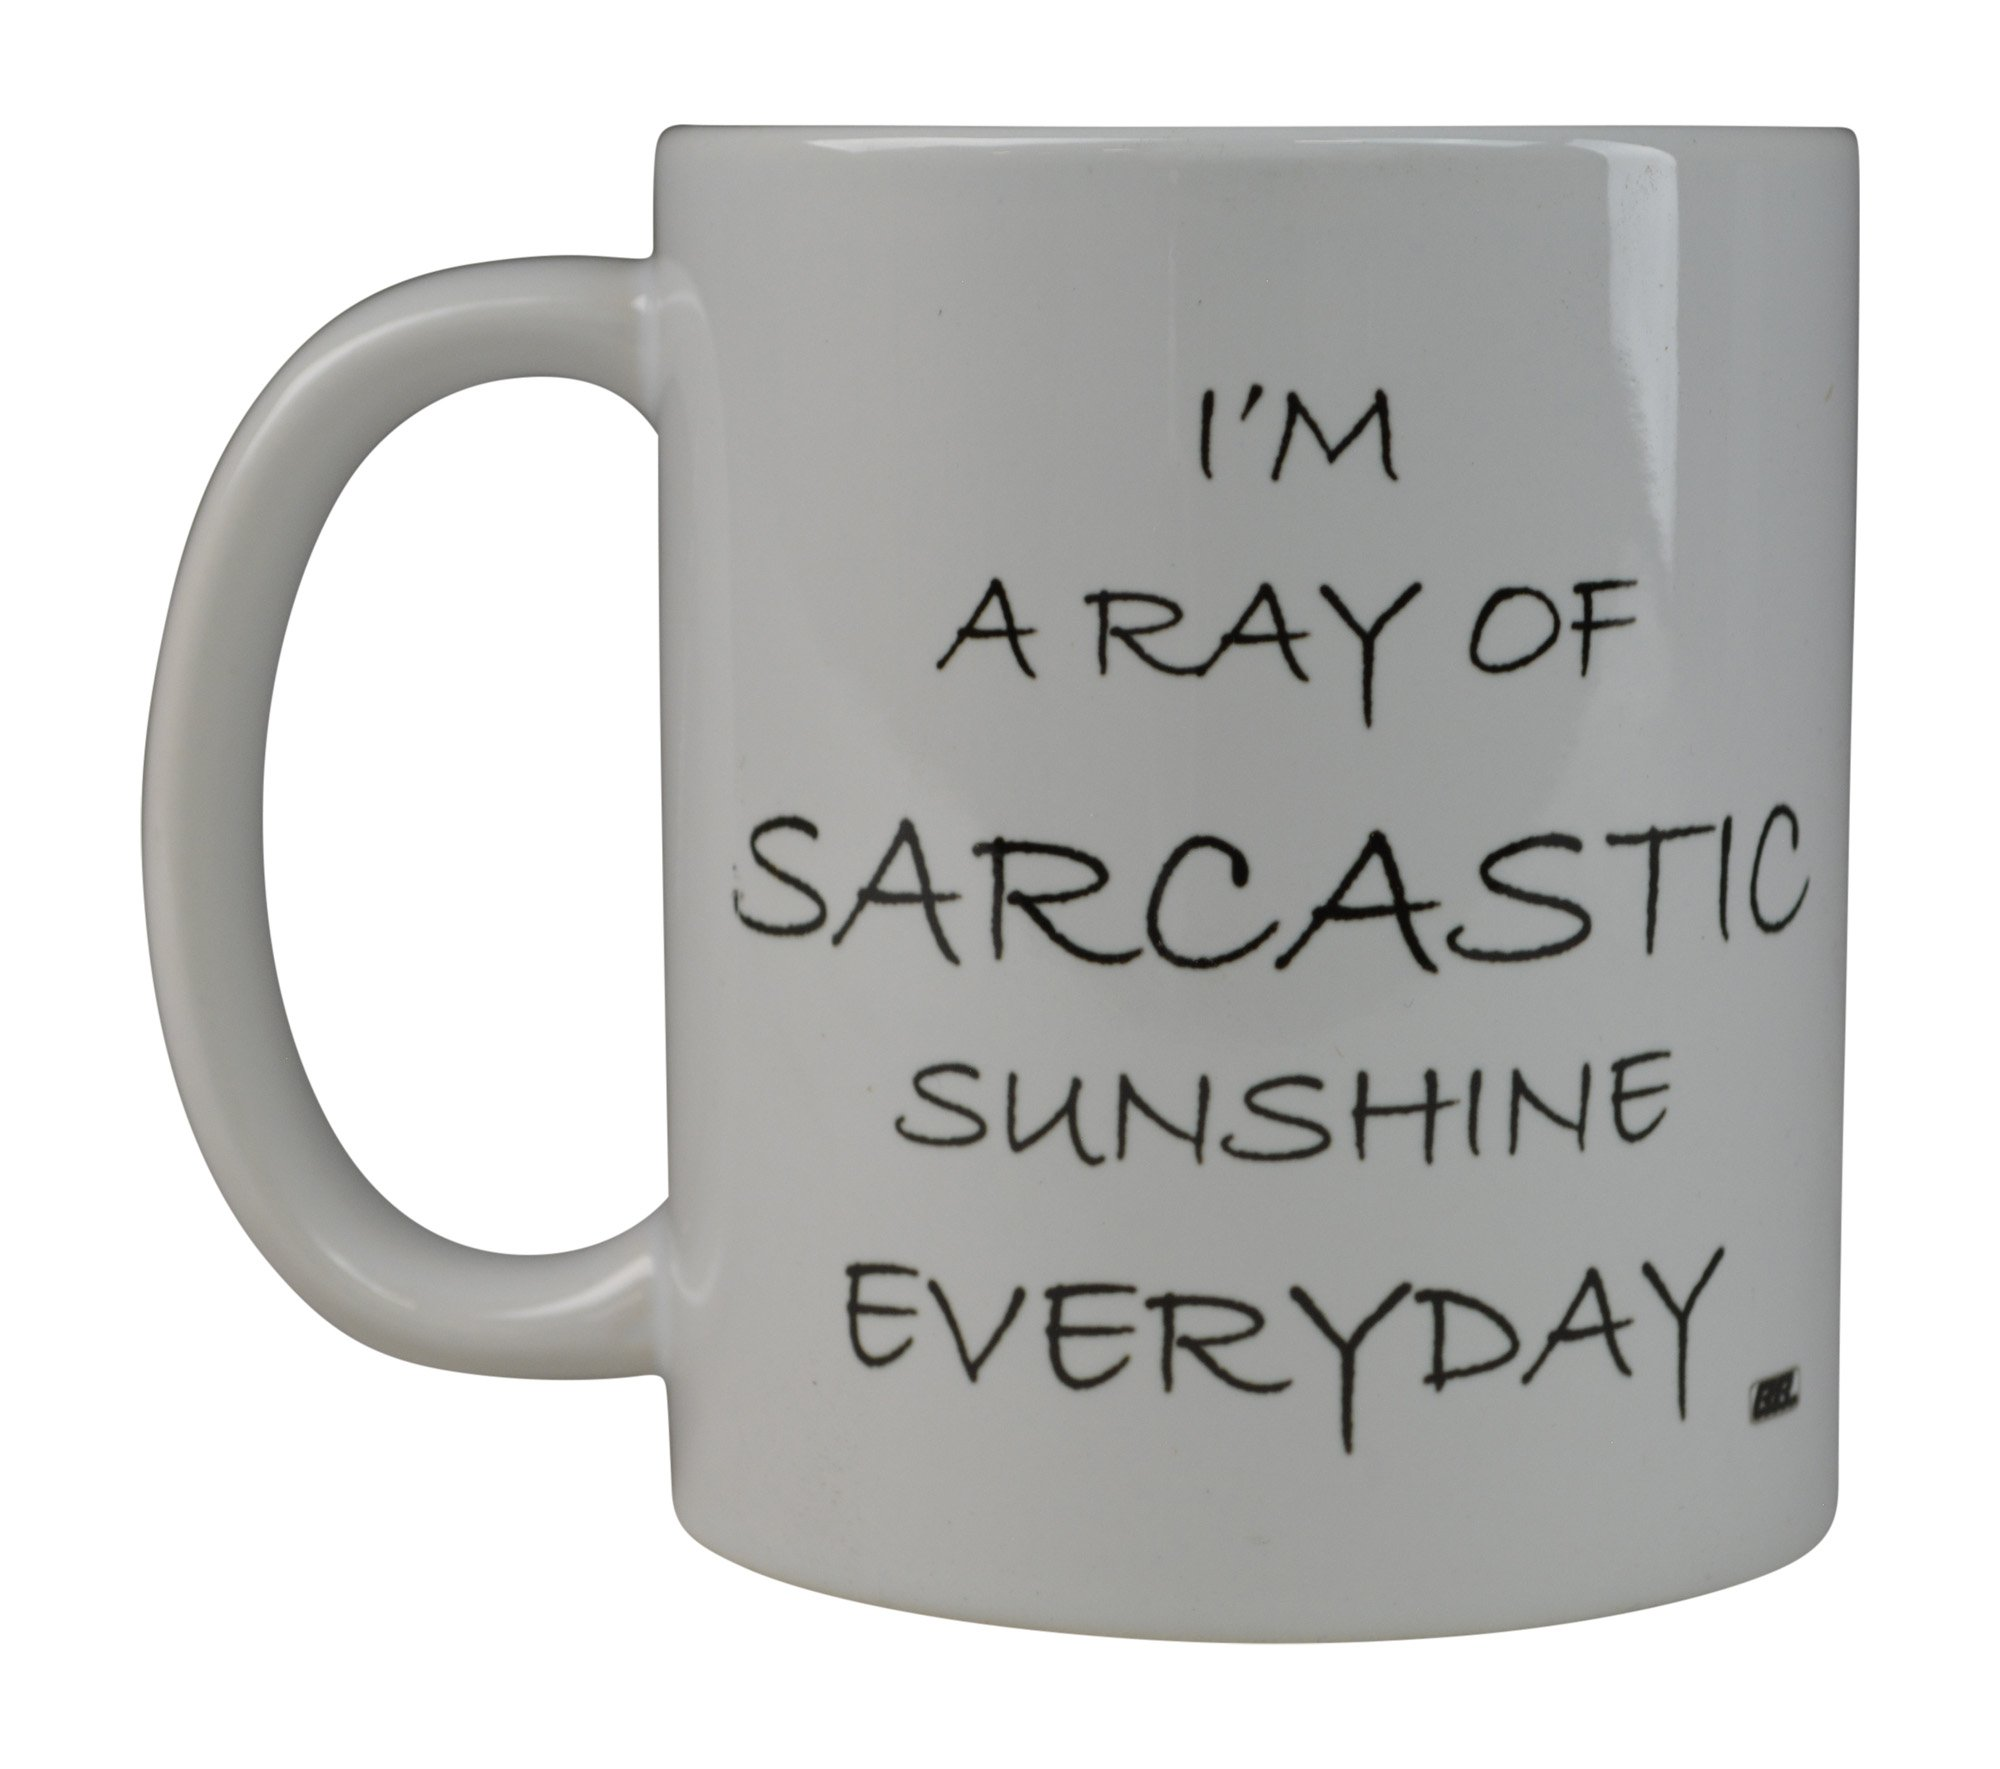 Rogue River Funny Coffee Mug I'M A Ray Of Sarcastic Sunshine Everyday Novelty Cup Great Gift Idea For Office Party Employee Boss Coworkers (Sarcastic)